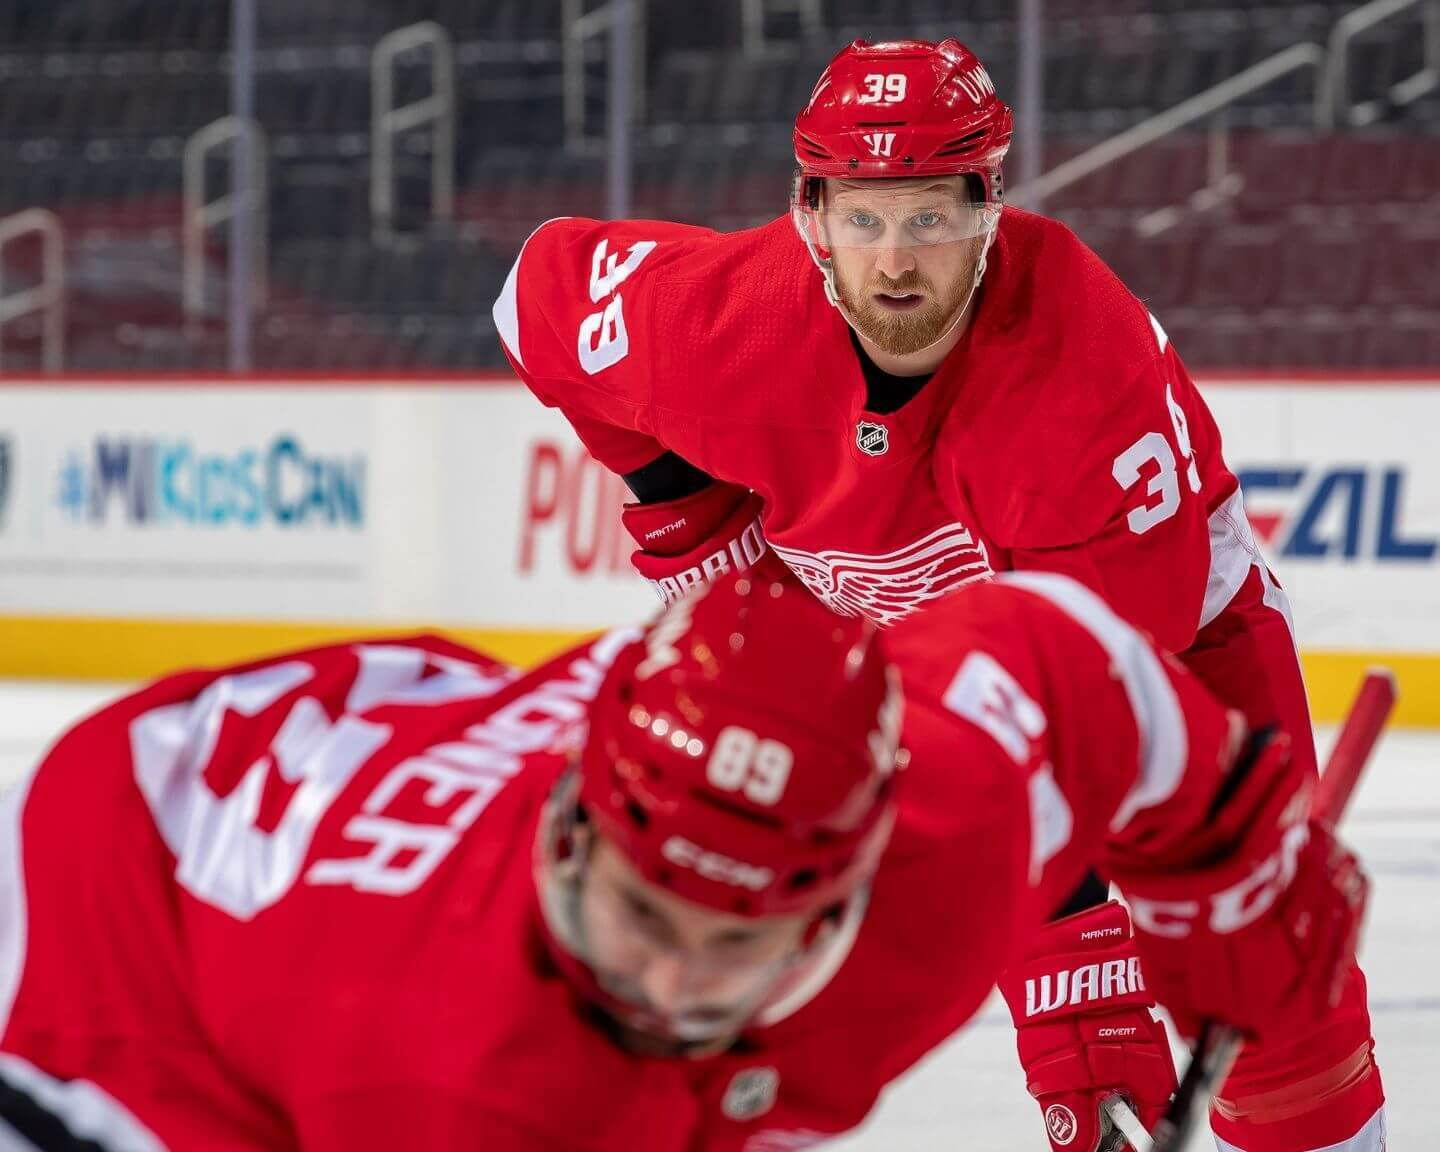 NHL trade deadline 2021: Live trades and analysis as Red Wings, Capitals make biggest deal of day